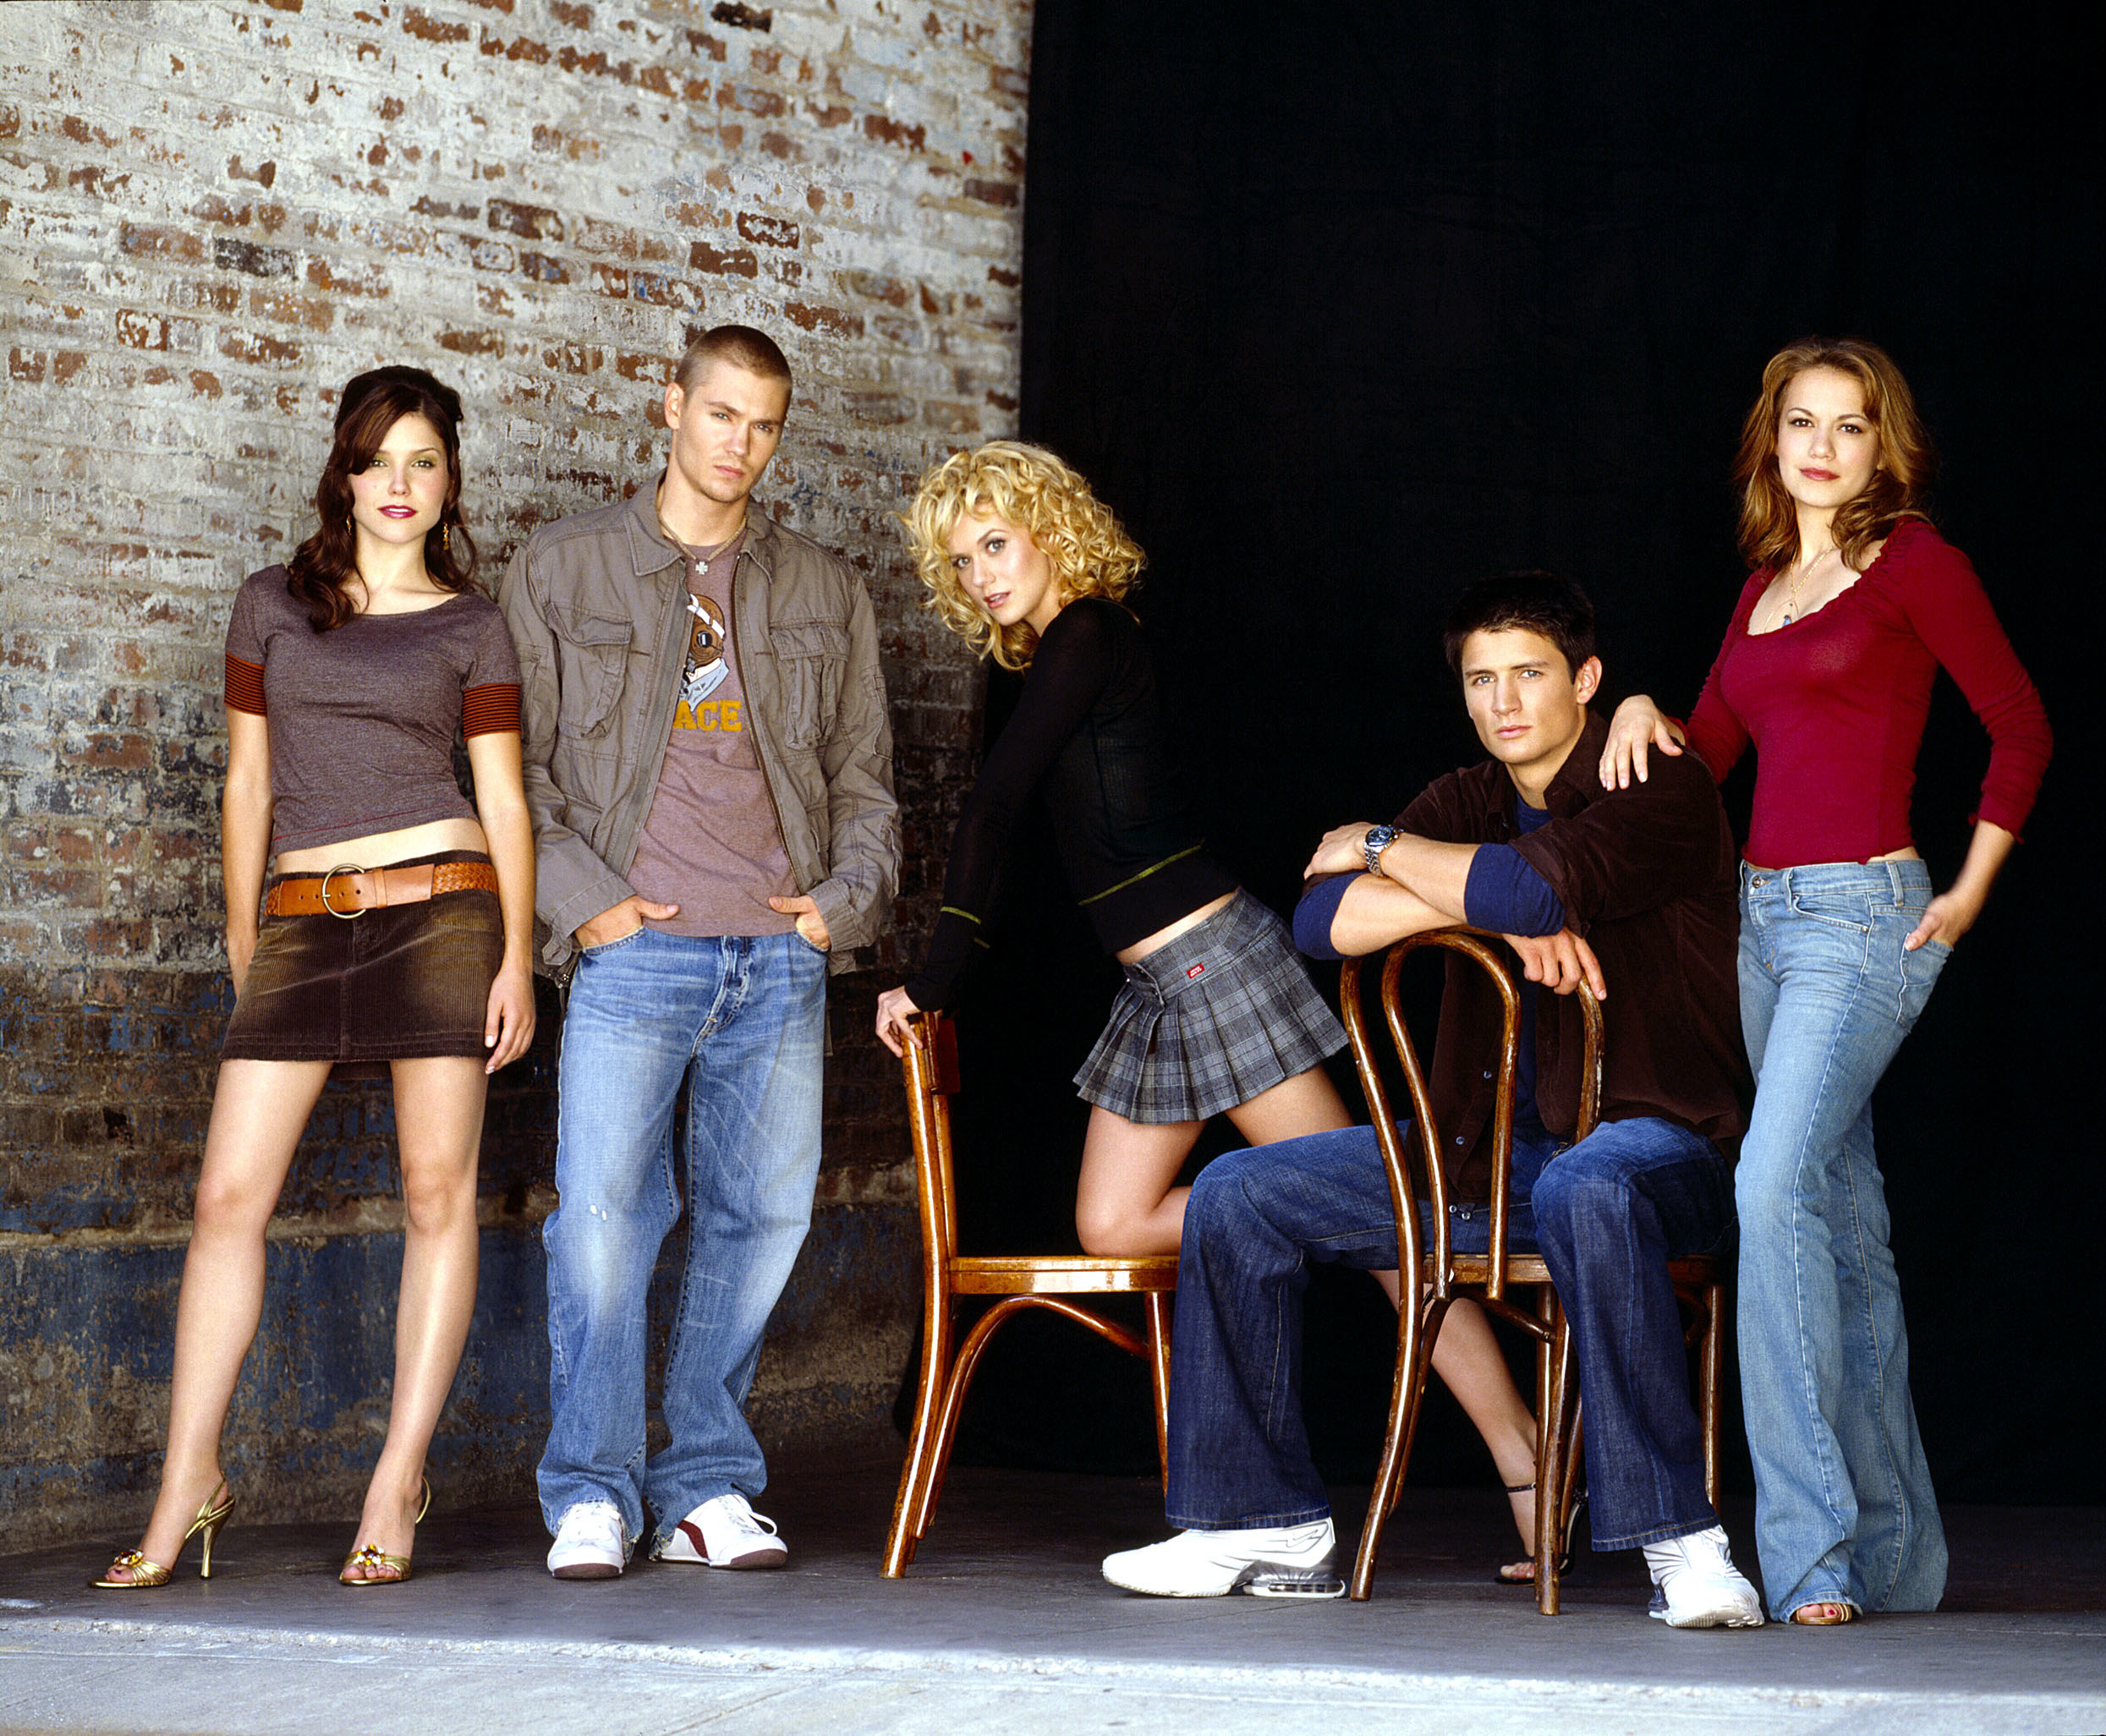 Brooke, Lucas, Peyton, Nathan, and Haley in an early promo shot